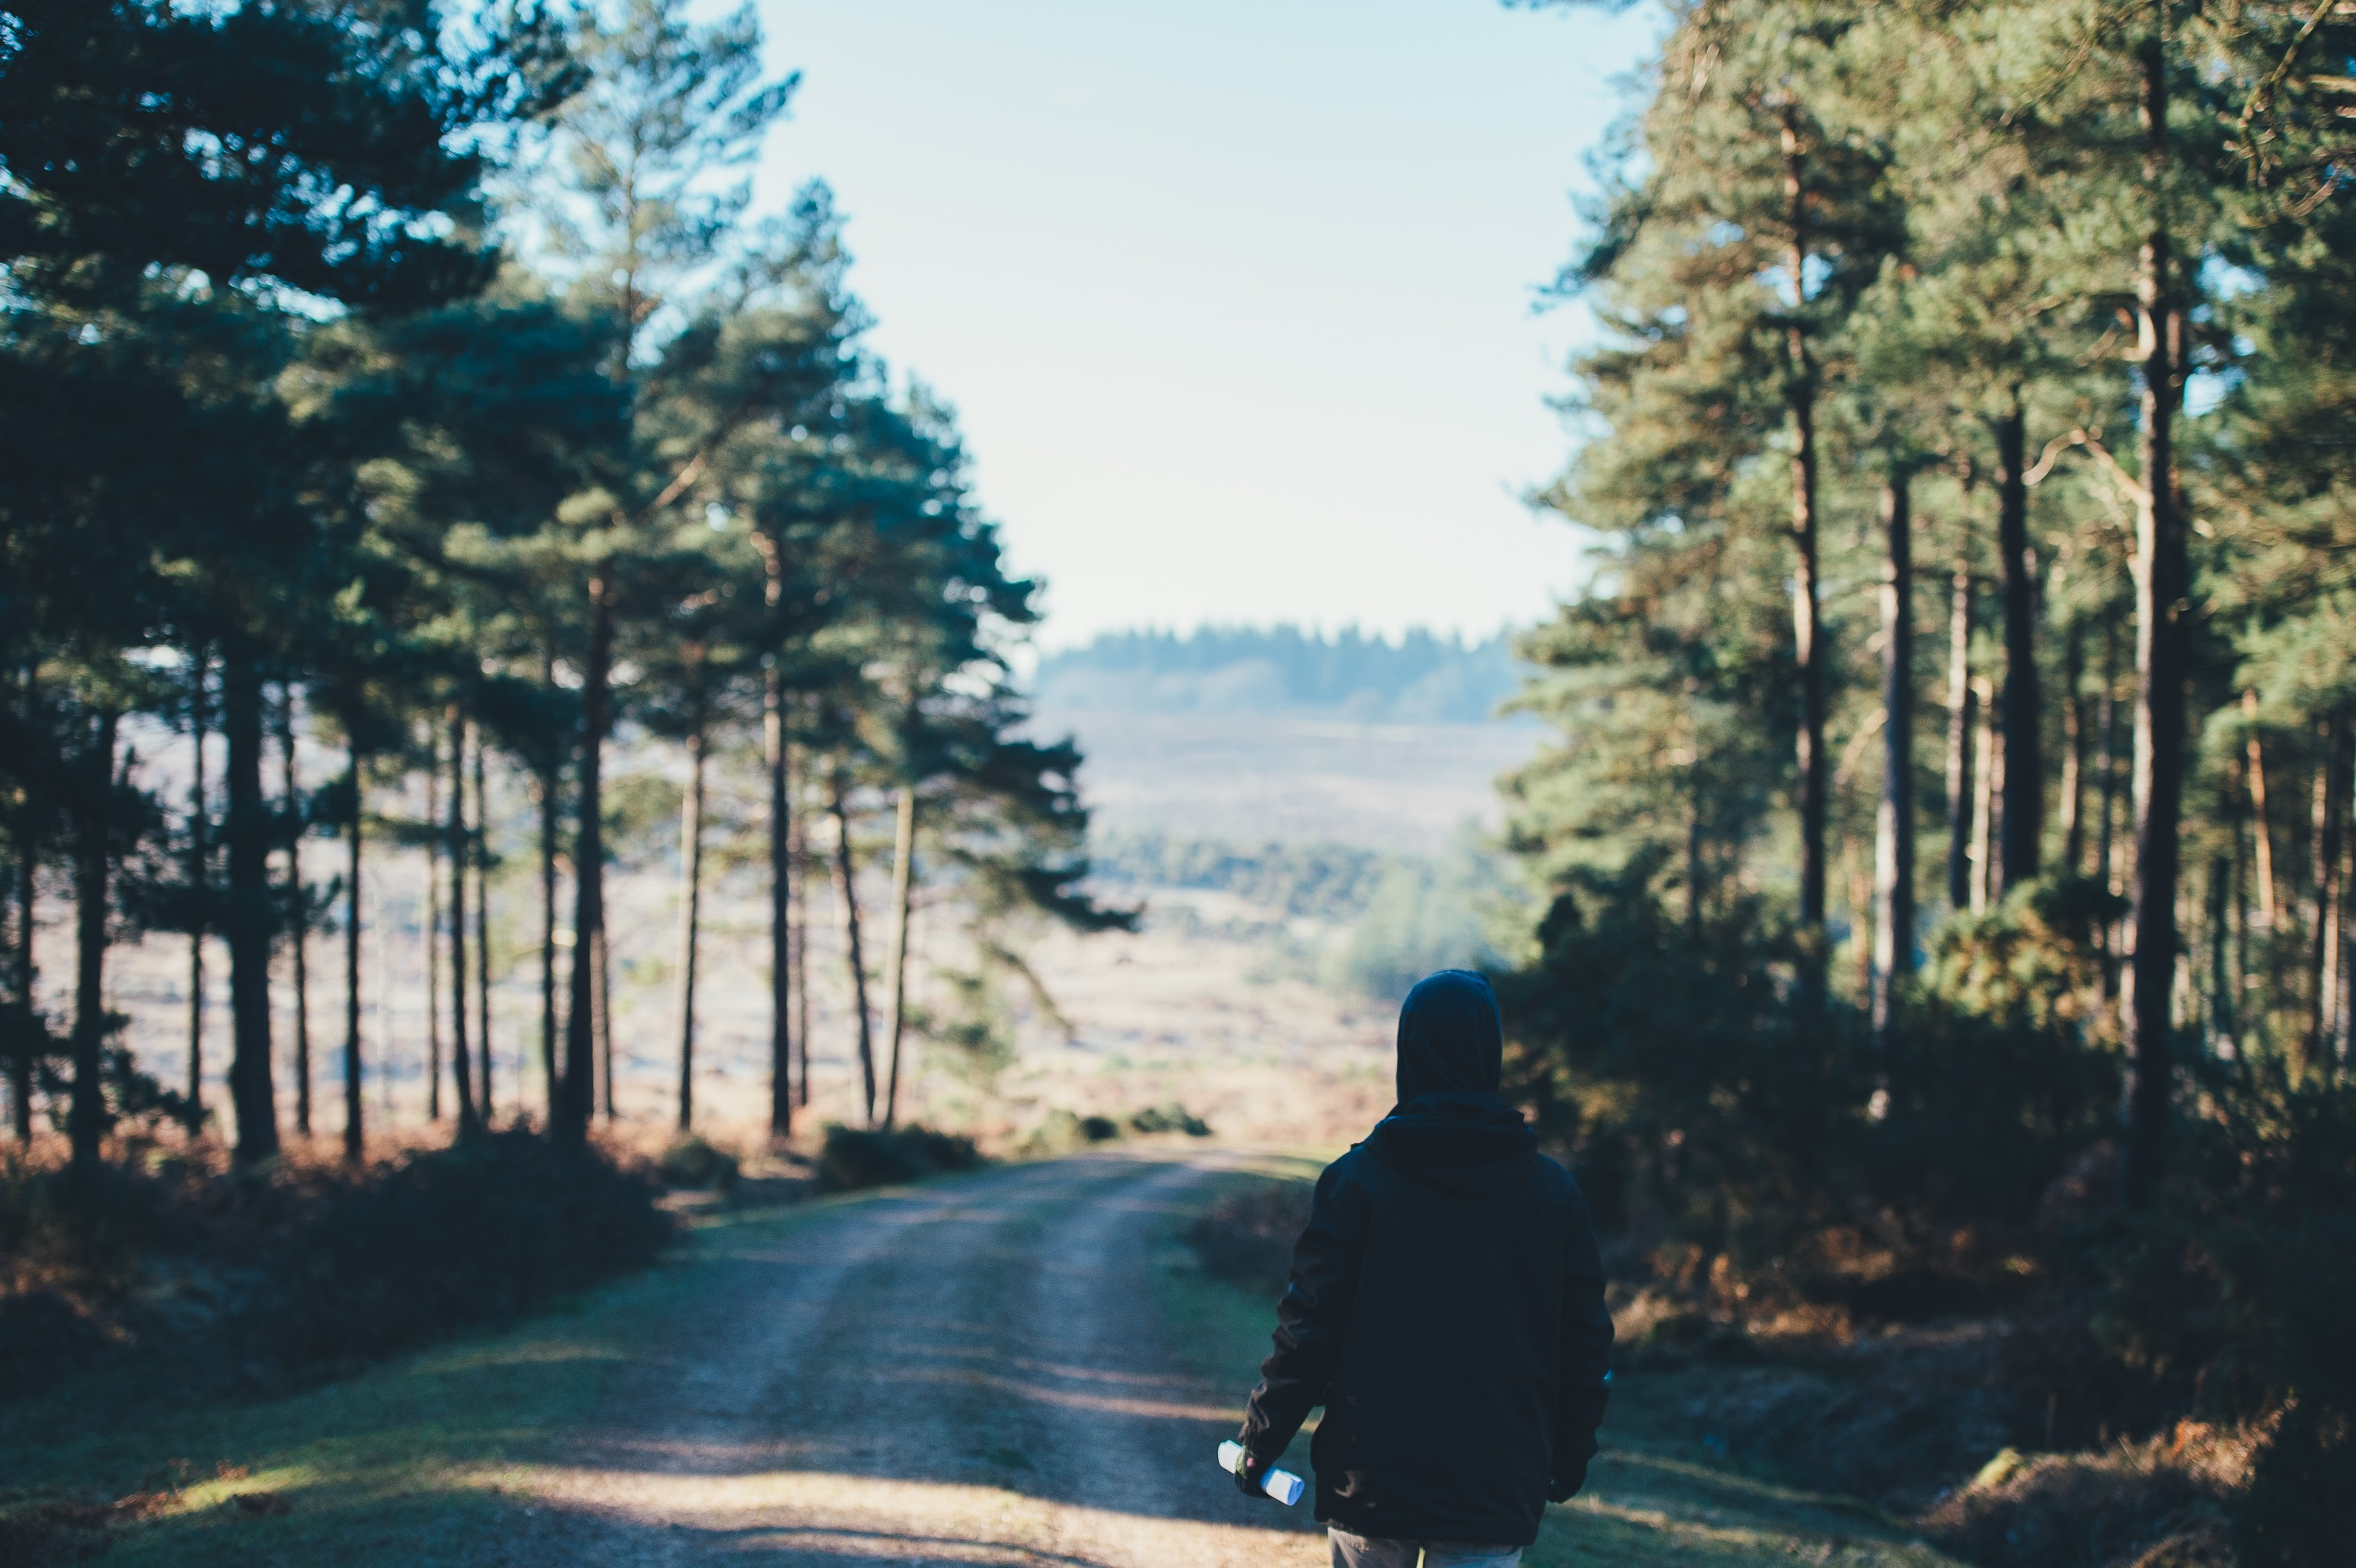 A person walking down a road in the New Forest National Park